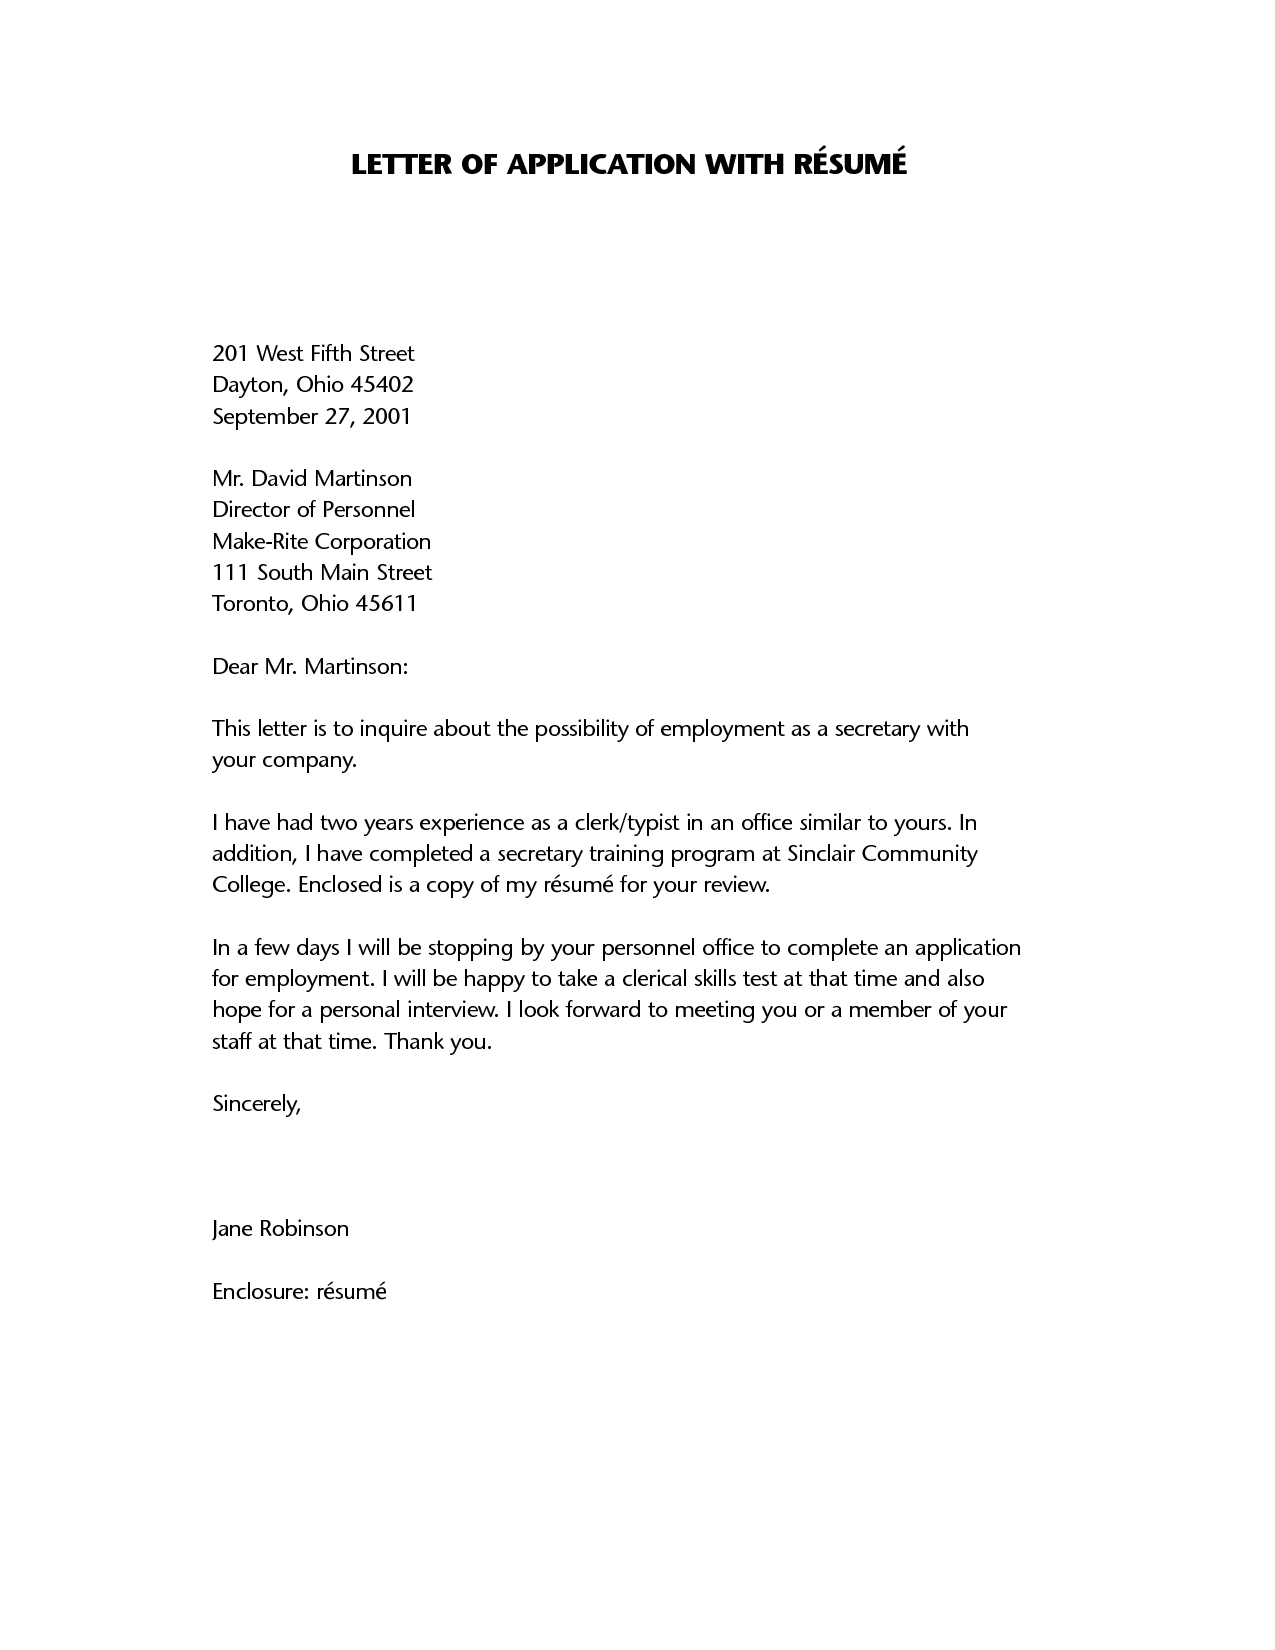 help with covering letter for job - resume application letter a letter of application is a